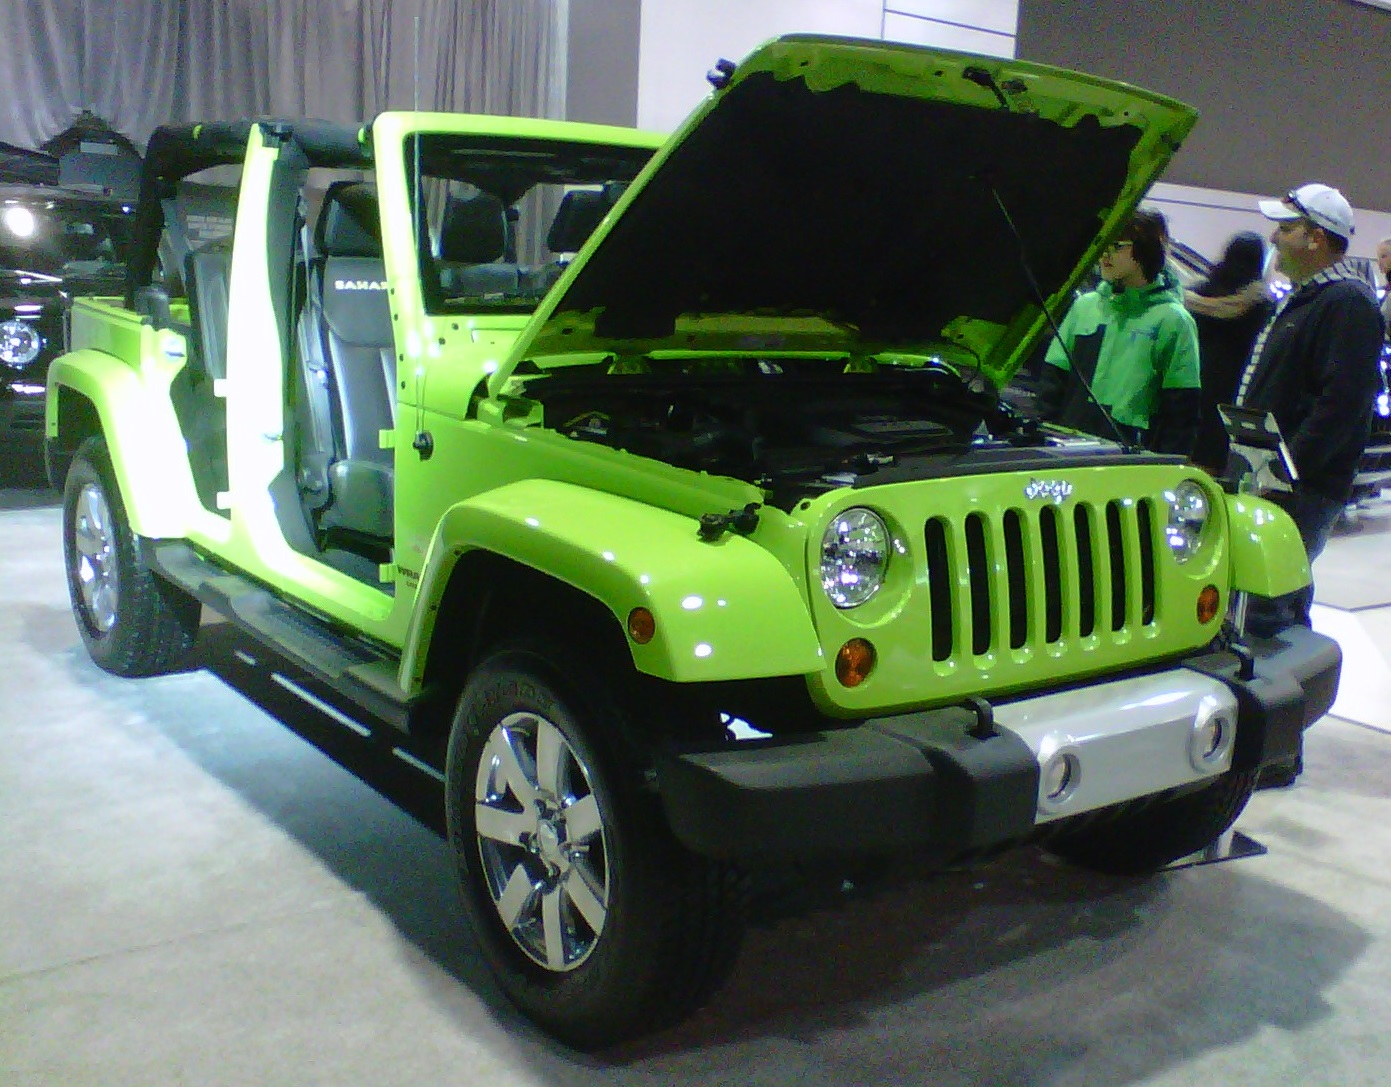 2014 Jeep Wrangler Unlimited looks brilliant in green